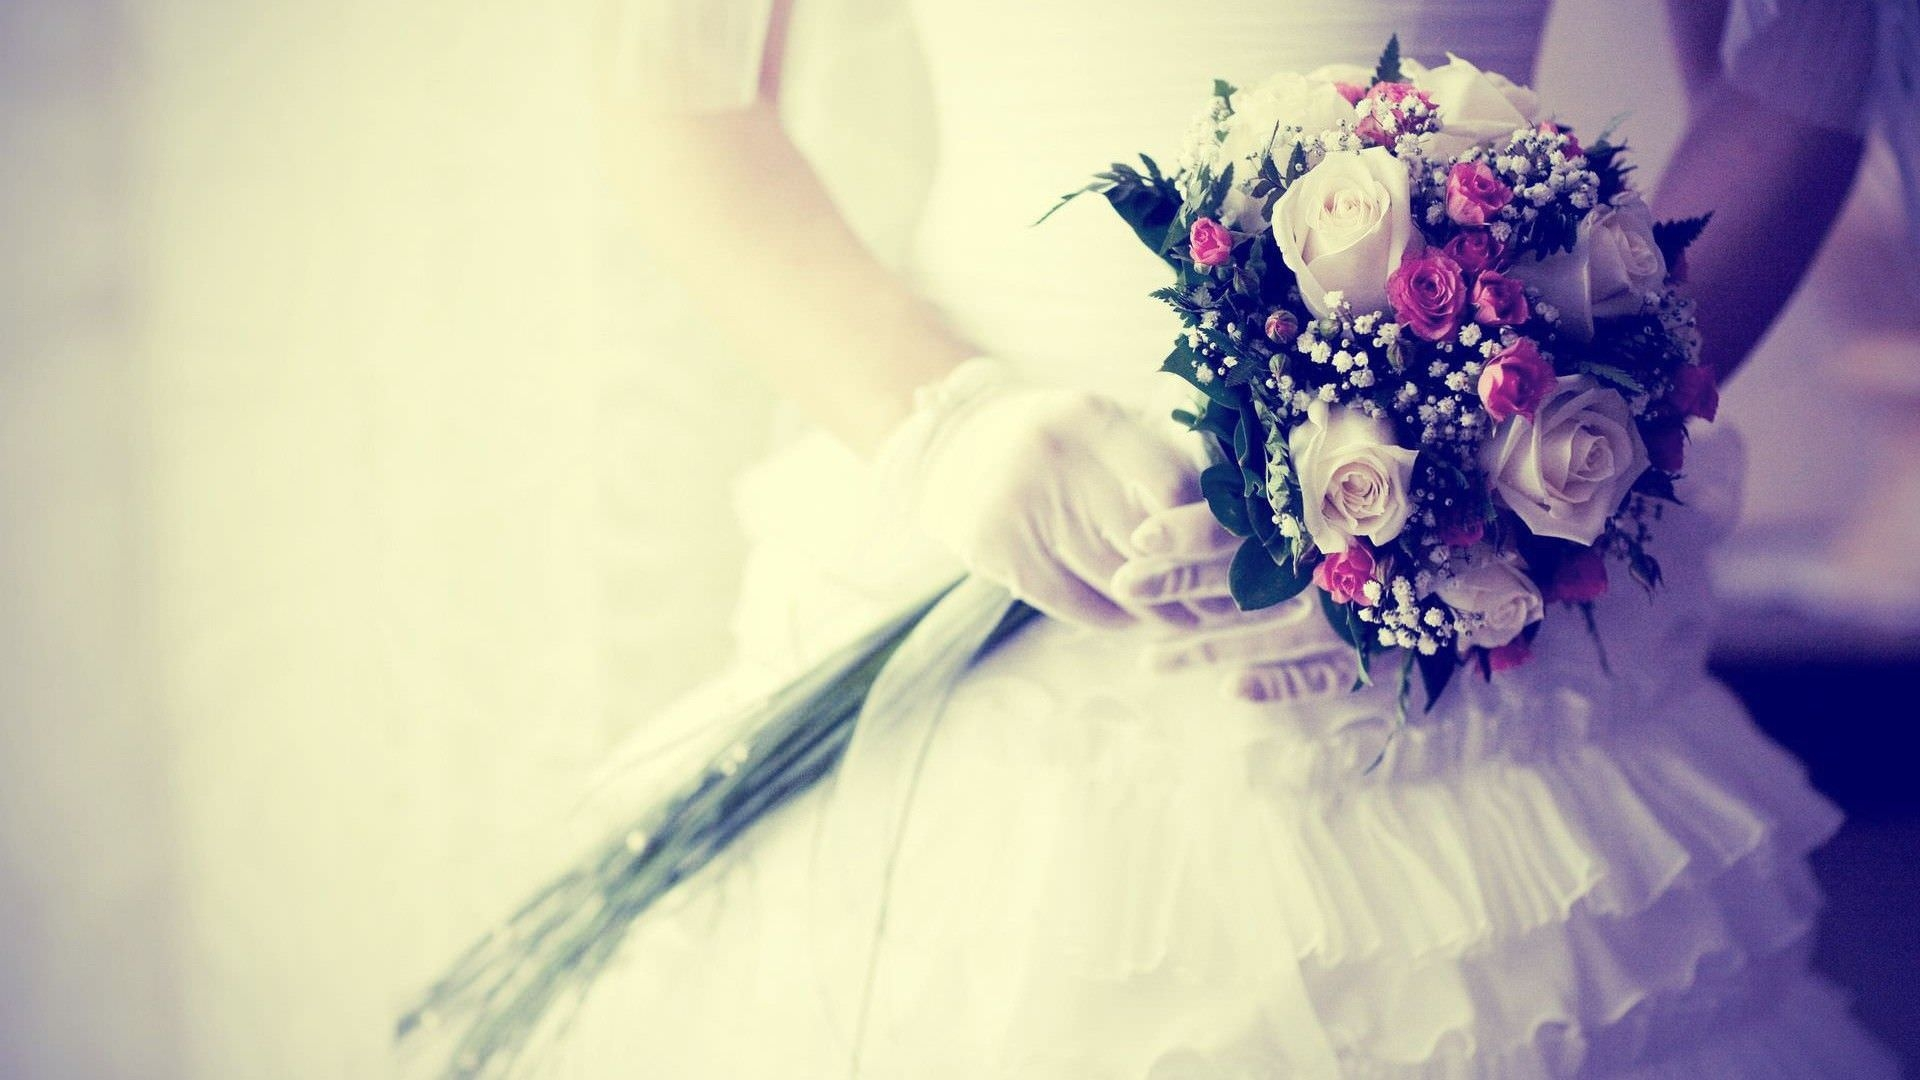 21 wedding backgrounds wallpapers images freecreatives